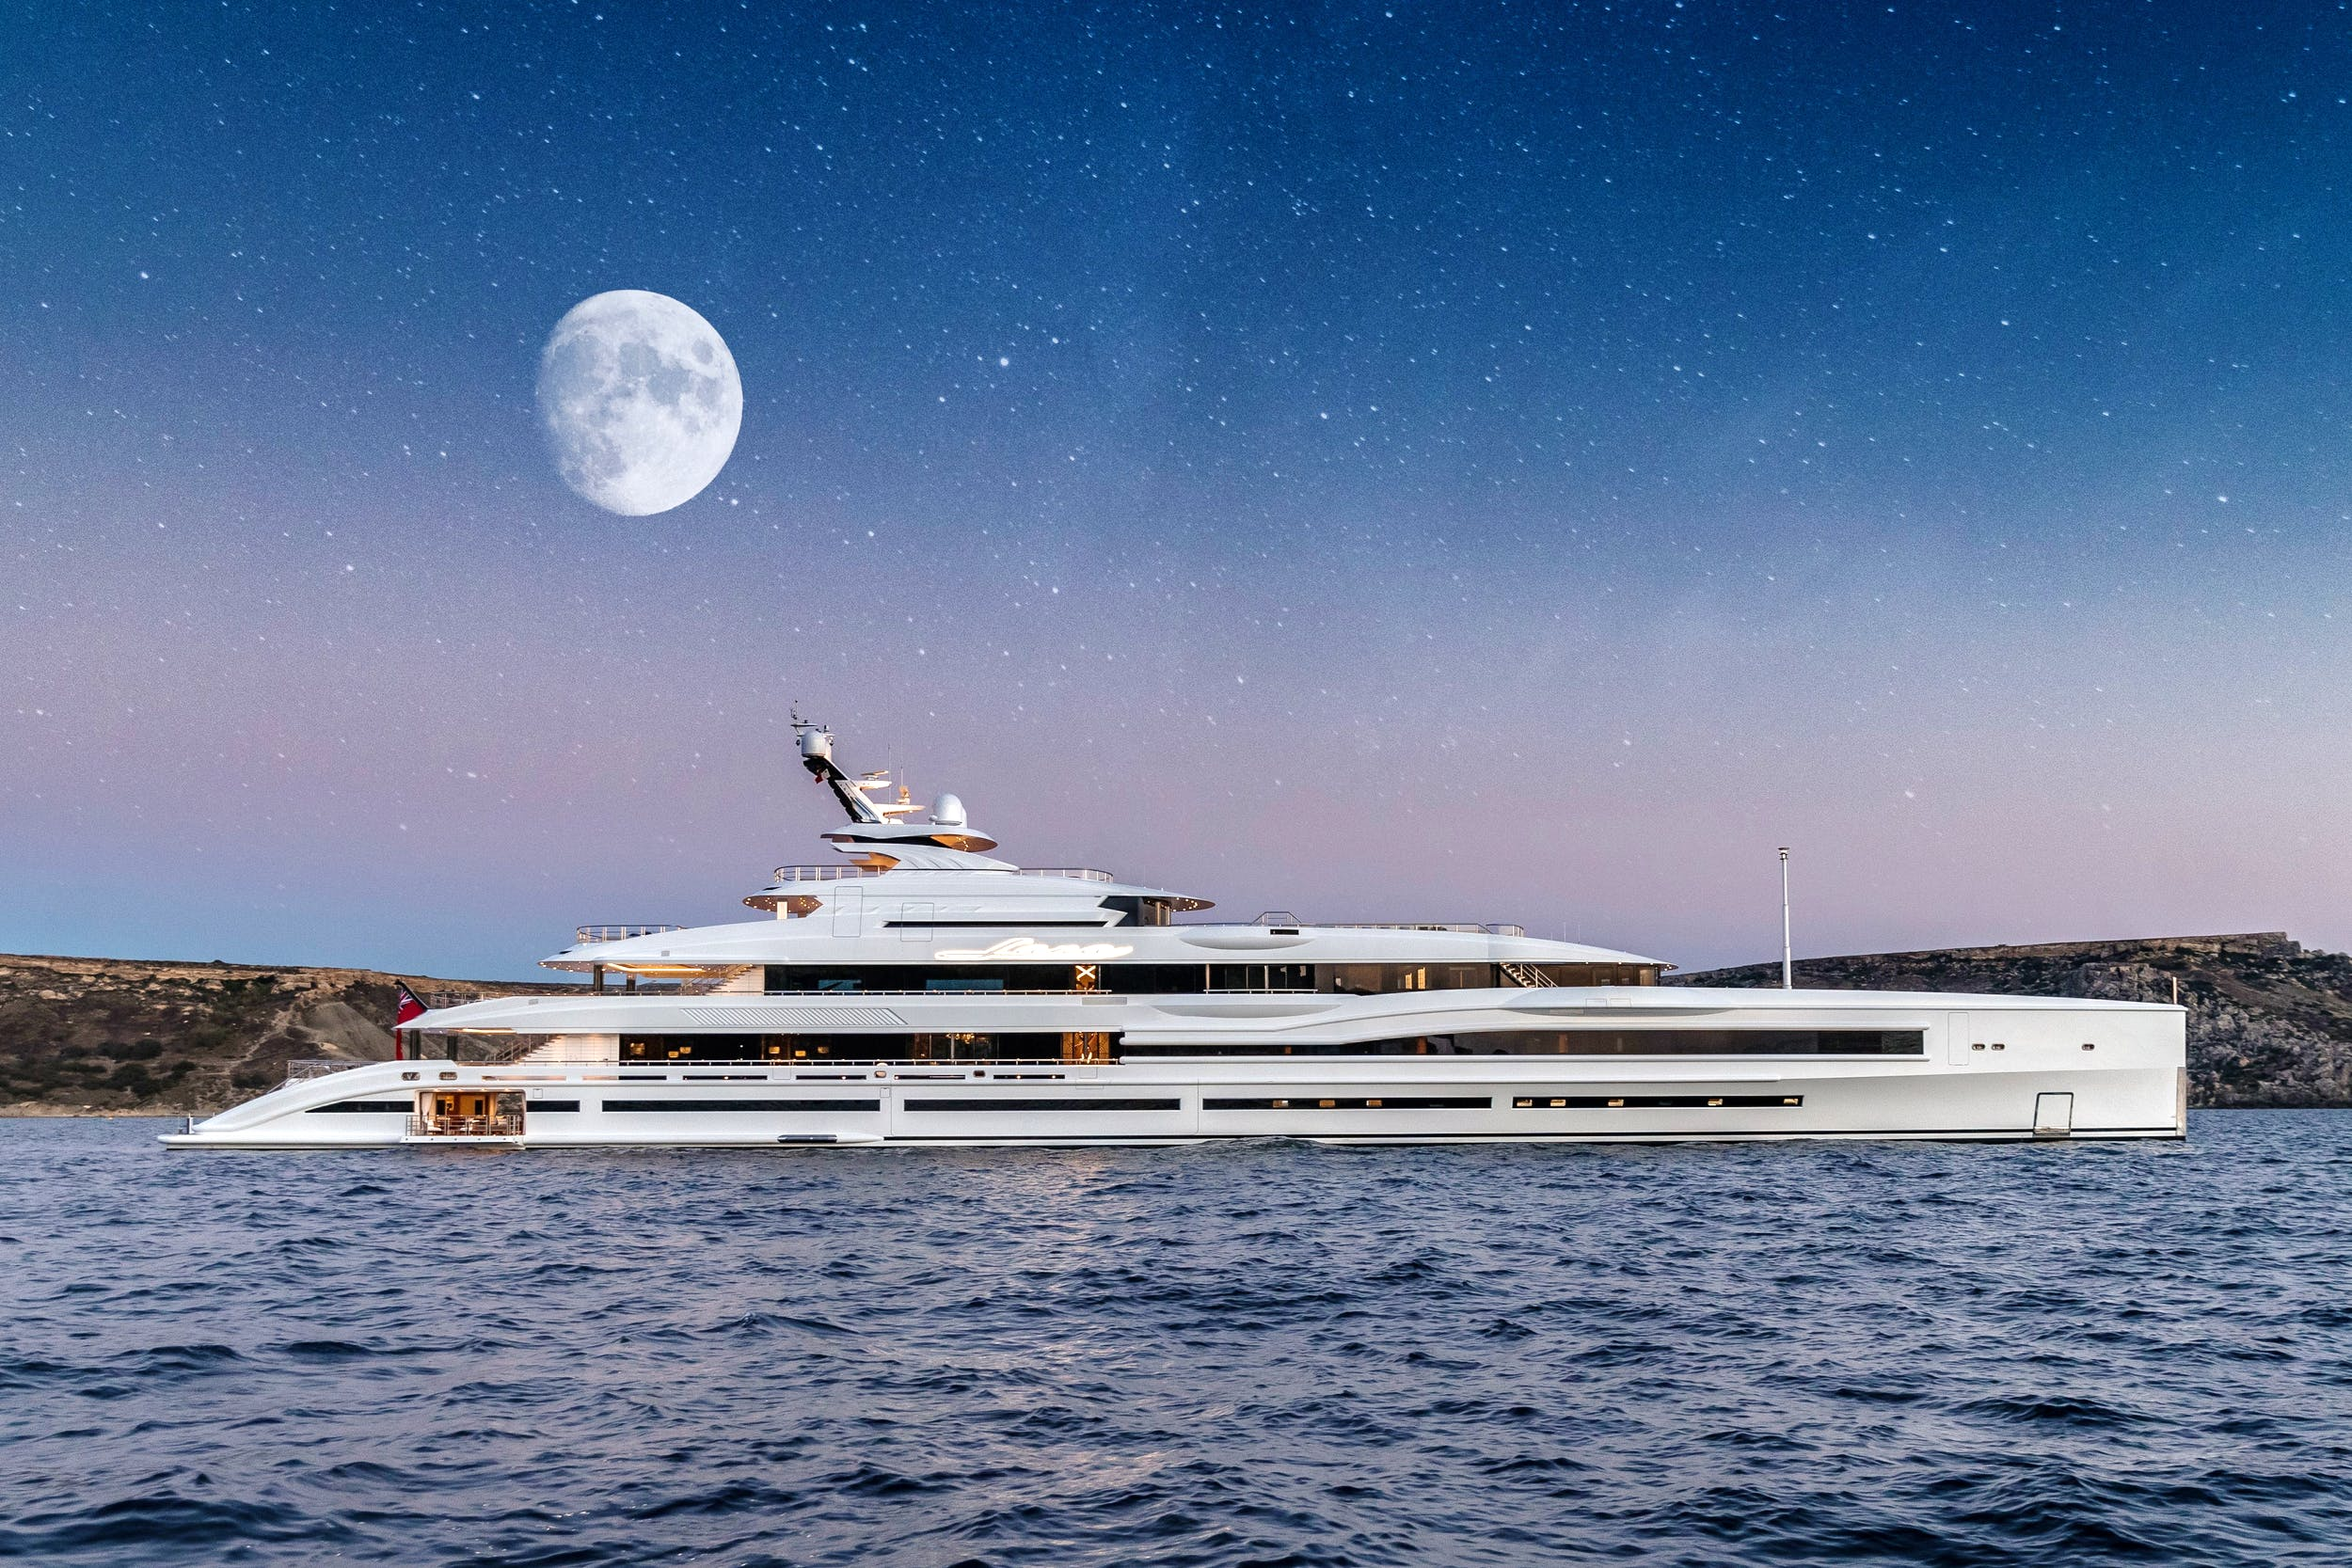 BEST OF THE BEST BY ROBB REPORT: LANA SUPERYACHT CHARTER